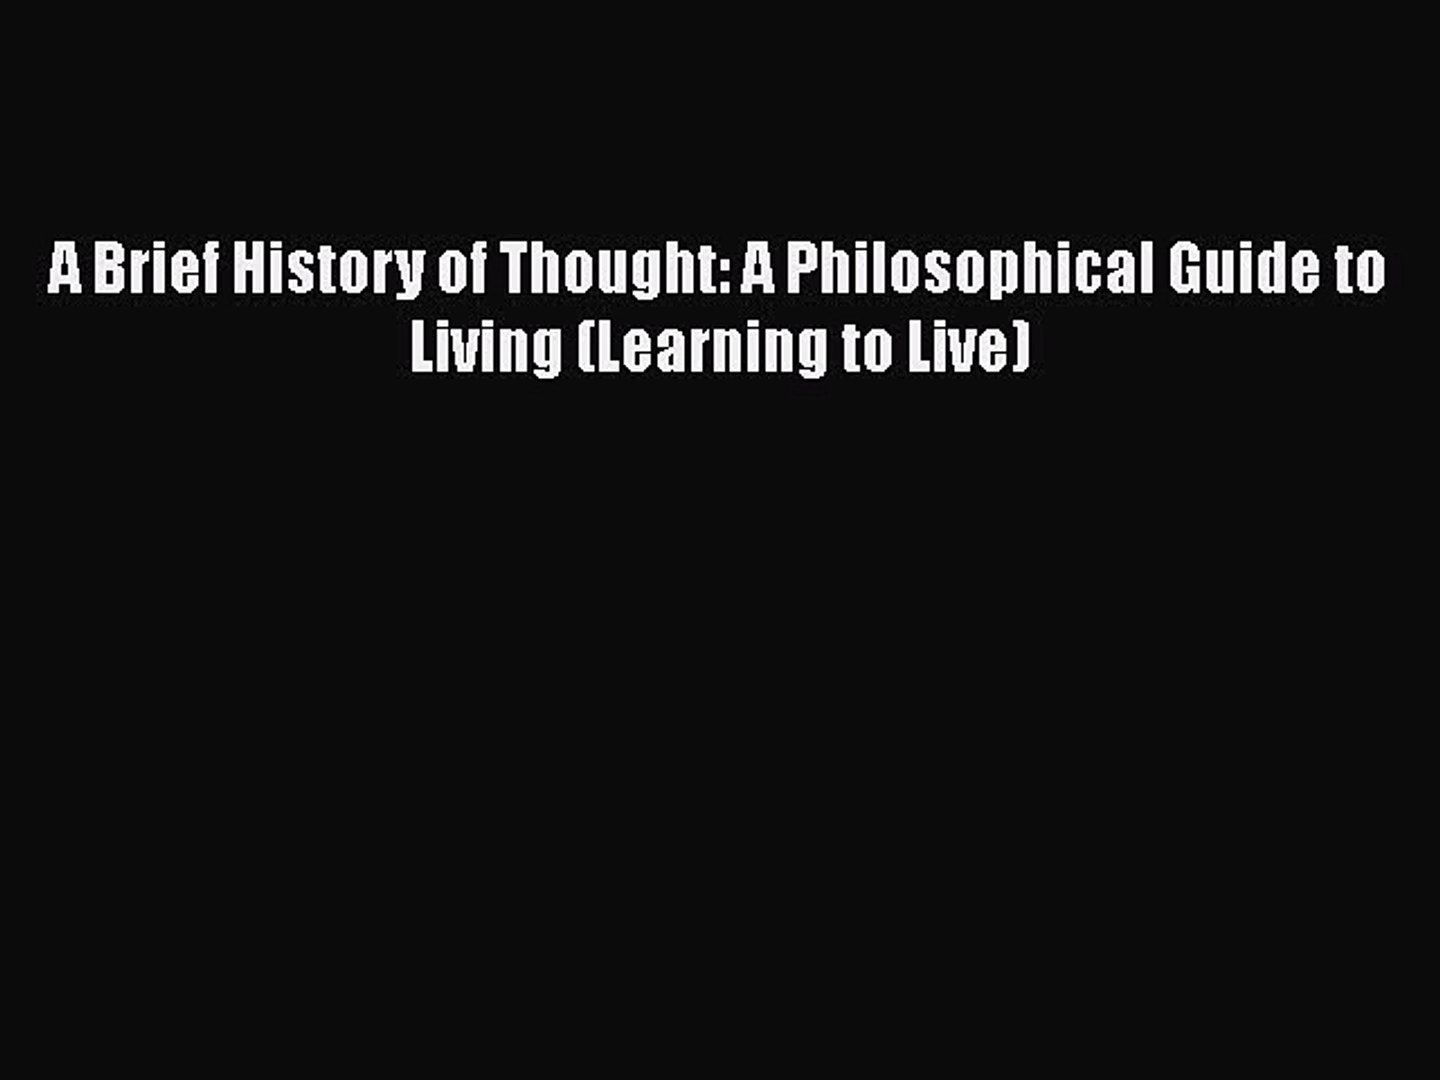 A Philosophical Guide to Living A Brief History of Thought